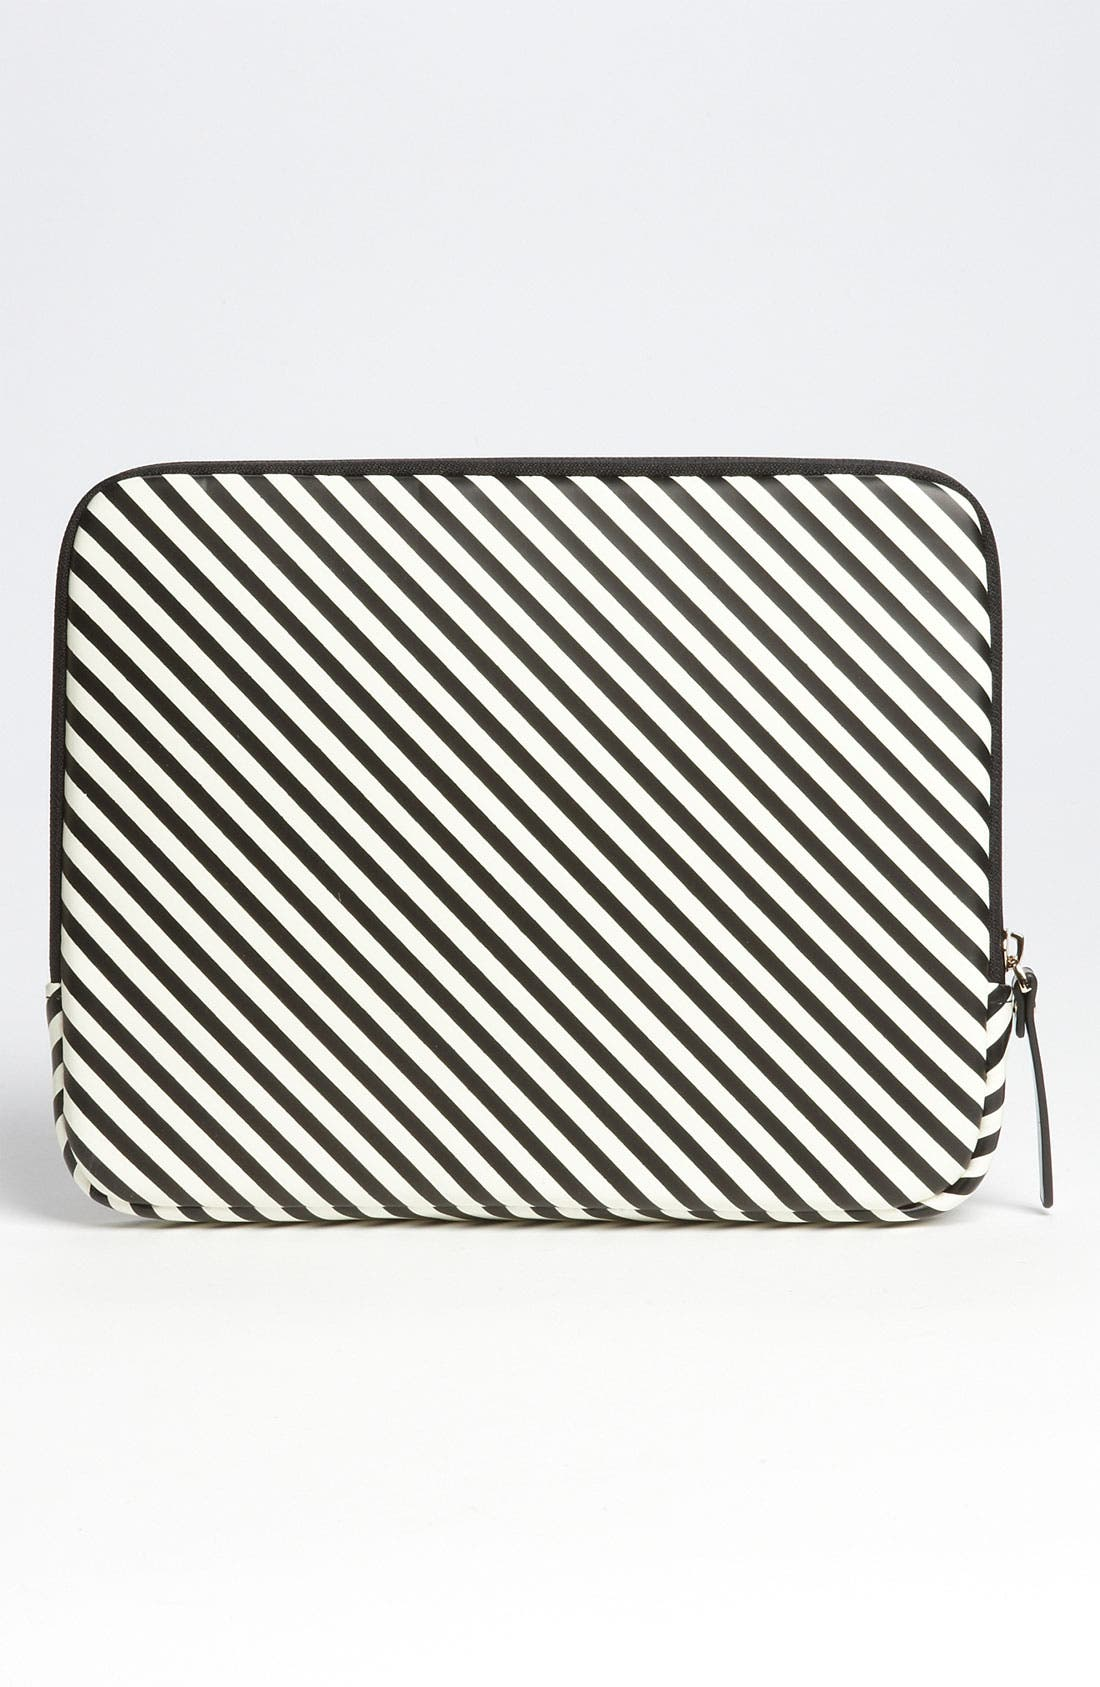 KATE SPADE NEW YORK,                             'harrison - stripe' iPad sleeve,                             Alternate thumbnail 2, color,                             019